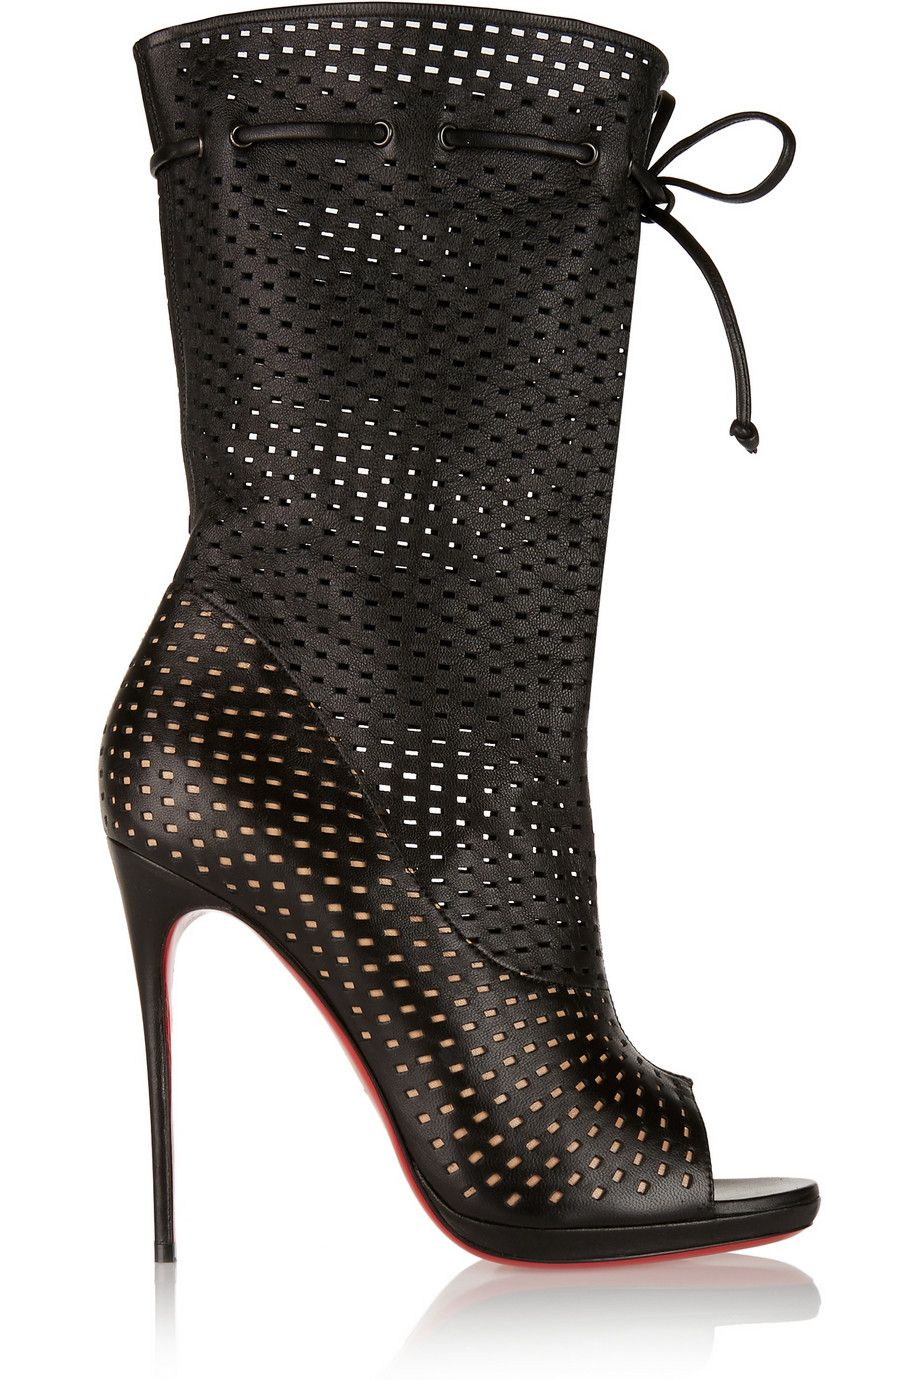 meet 96e96 be5f7 Christian Louboutin - Jennifer 120 perforated leather boots ...